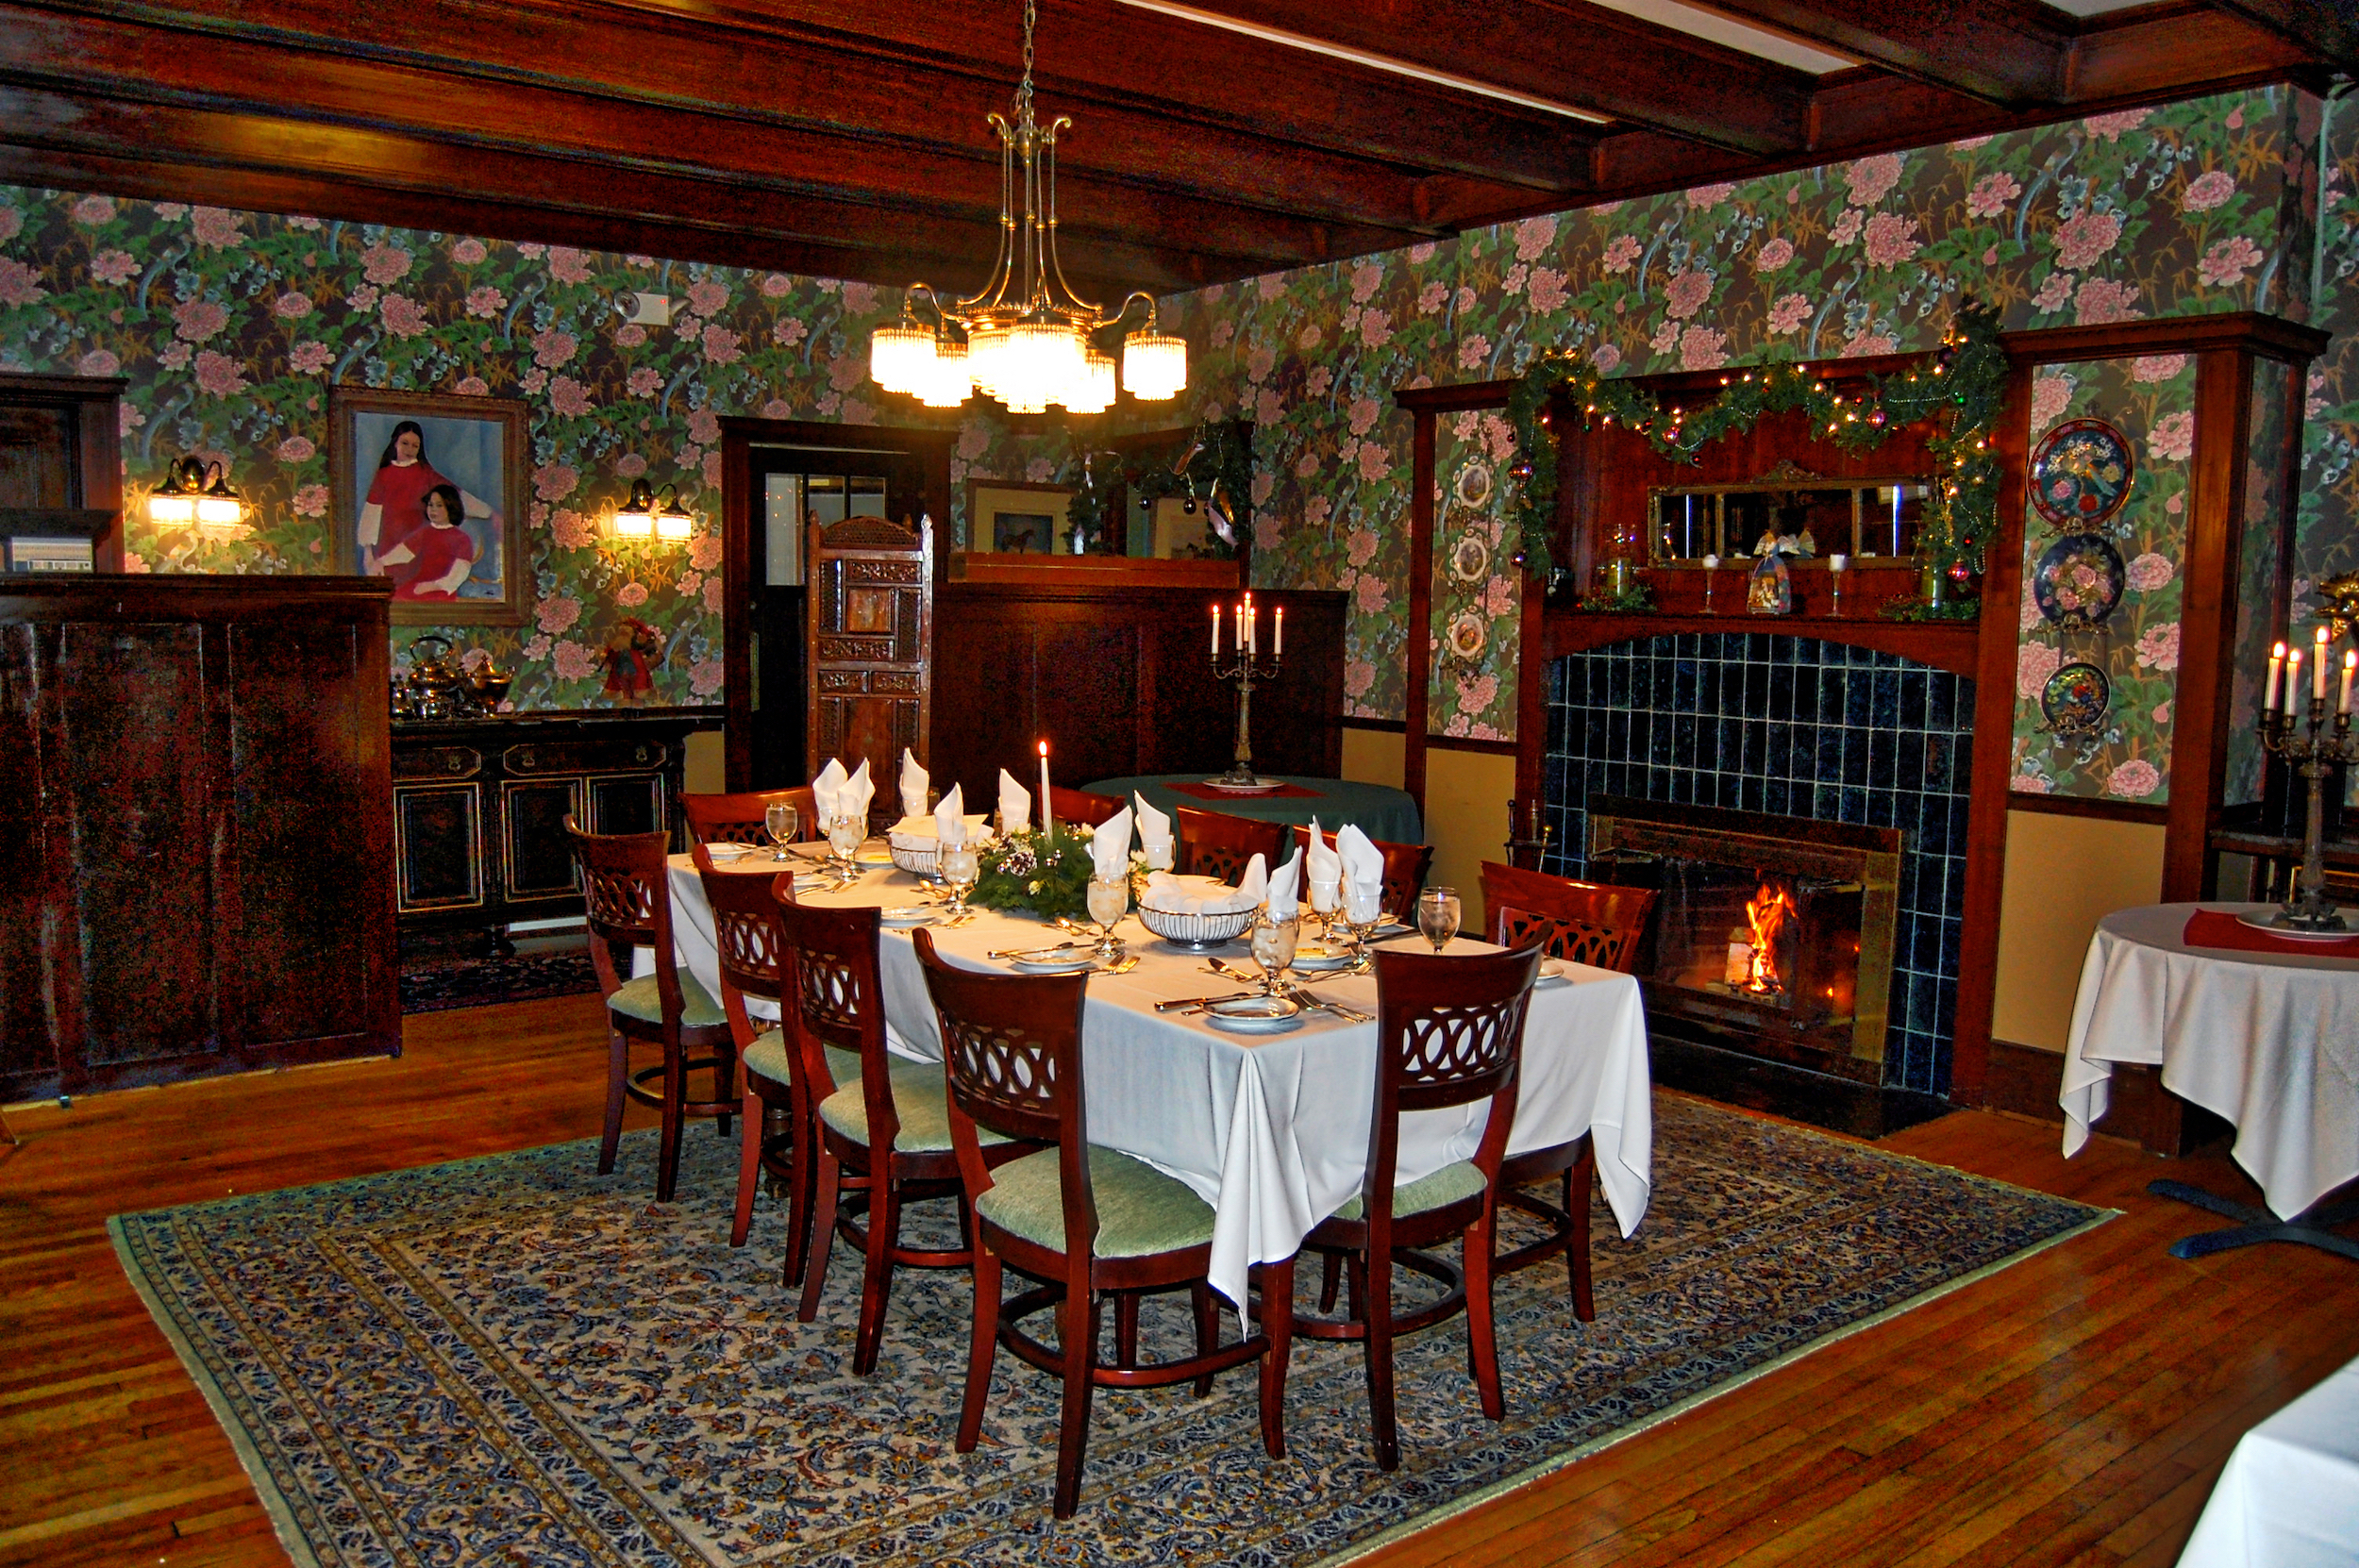 Rose_Dining_Room_1_Table_I_Wilburton_Inn.jpg